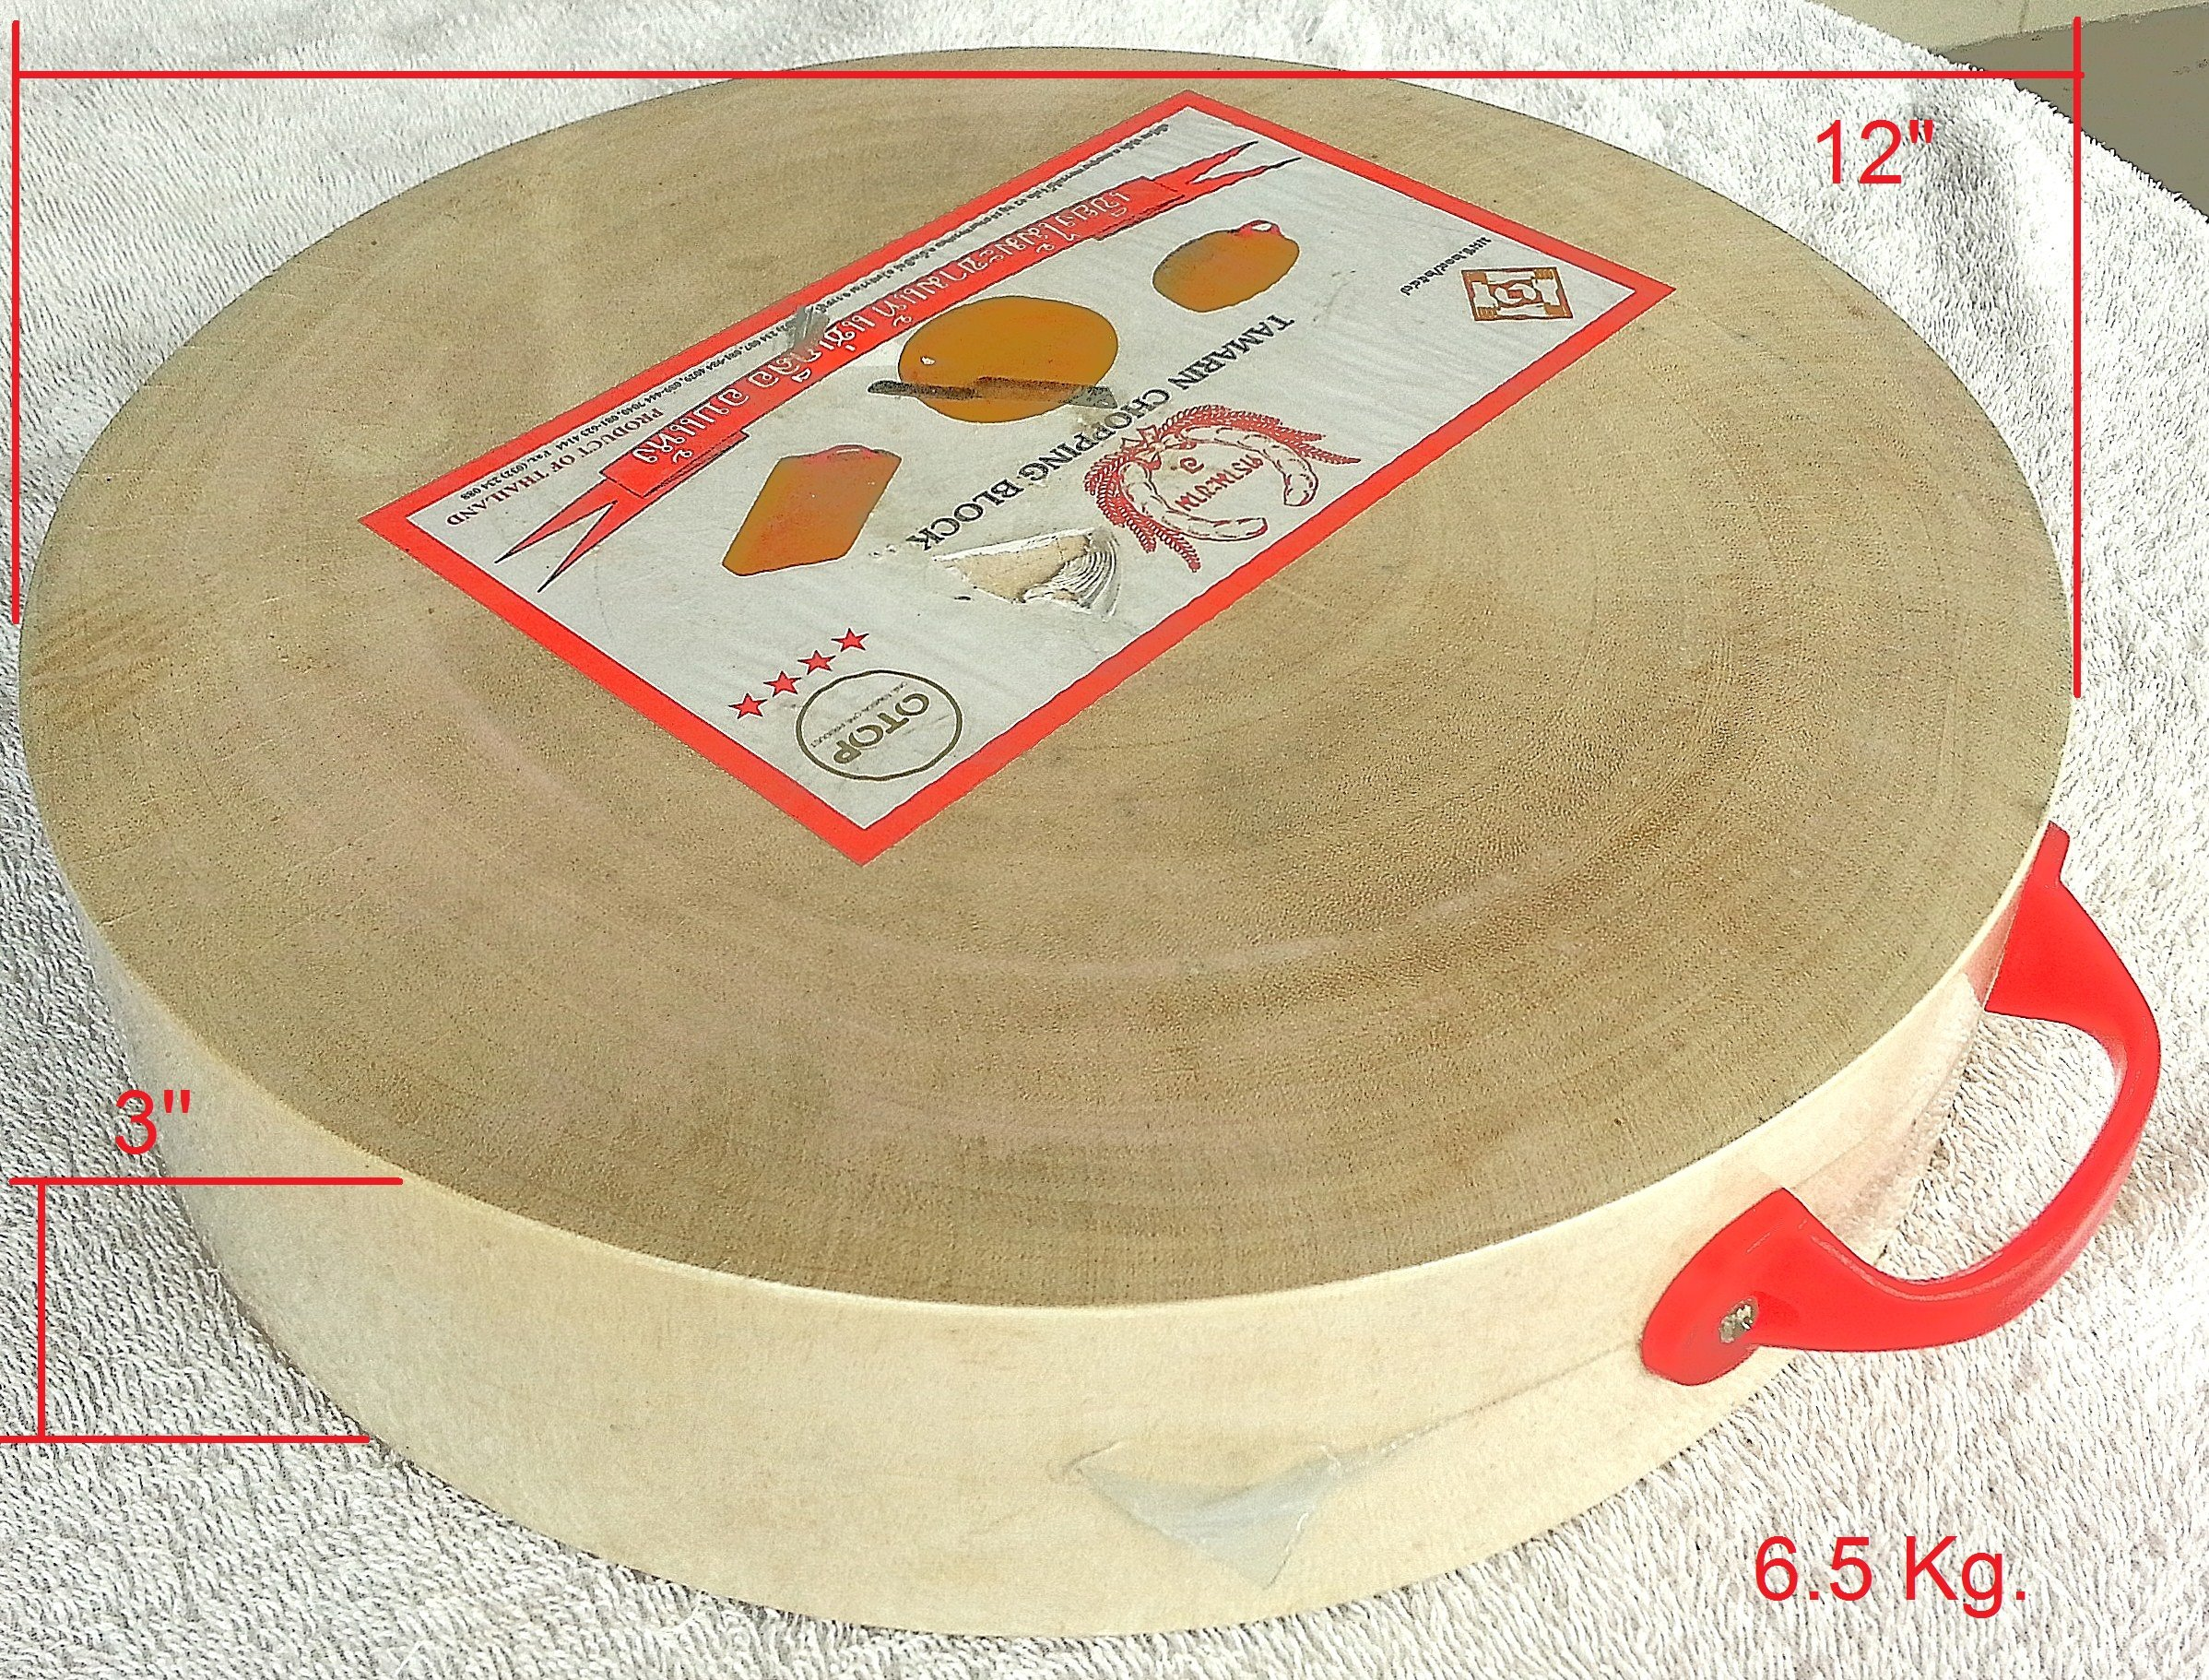 Large 12'' in Pile of Tamarind Wood Cutting Chopping Board Cutlery Wooden Butcher Block Countertops Culinary Arts Thailand Product with aboriginal chopping boards by OTOP Thai